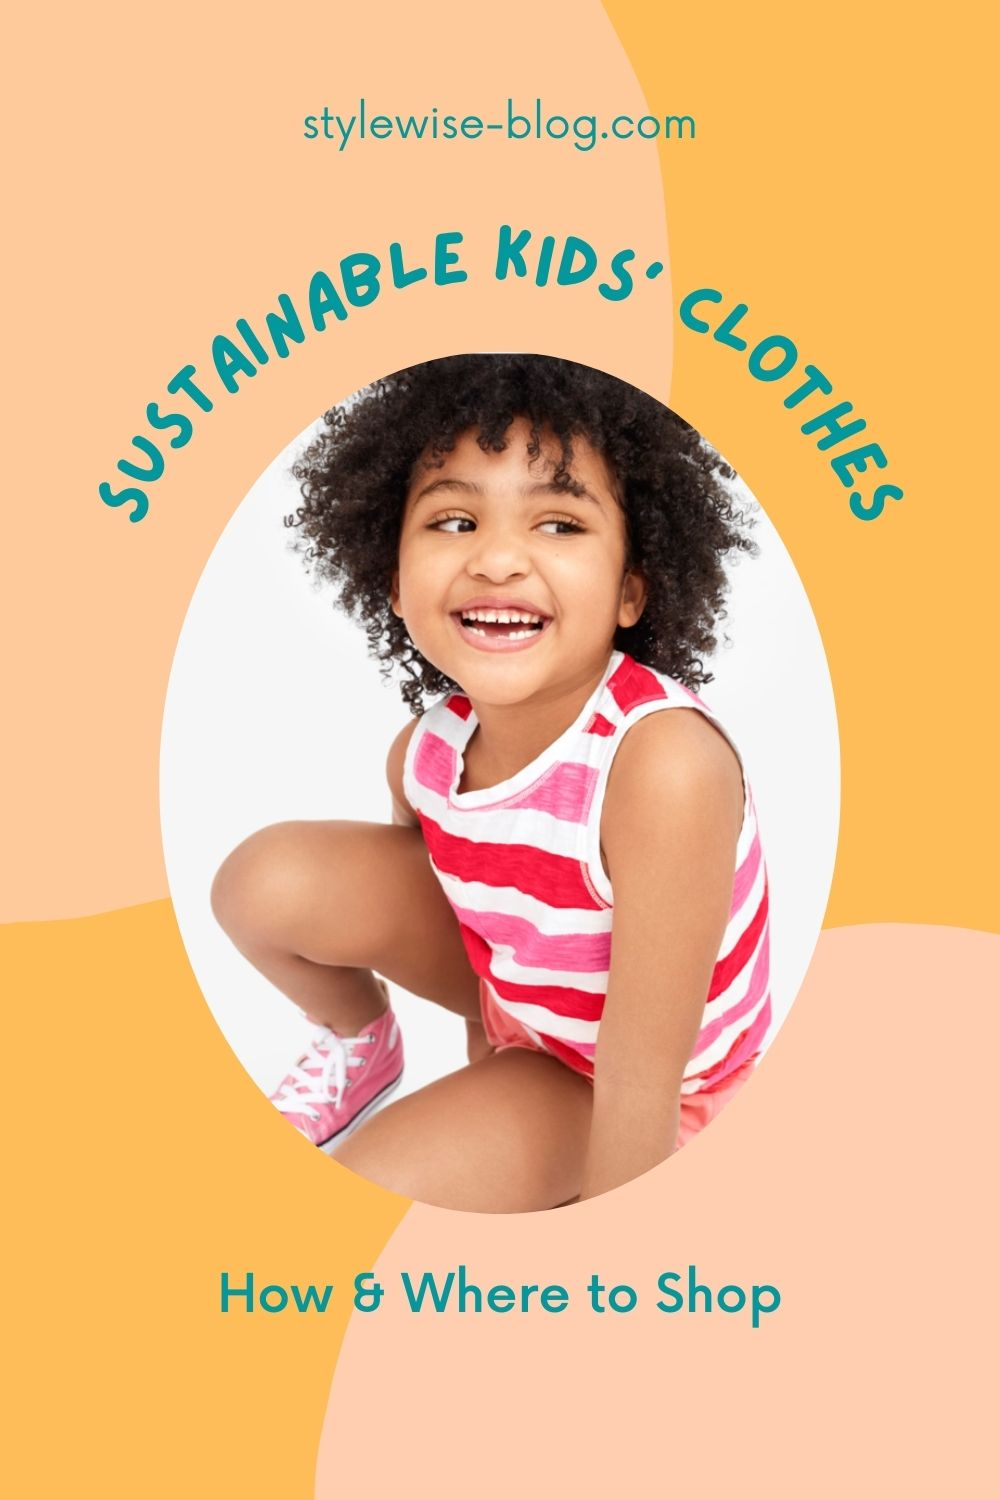 sustainable kids' clothes - how and where to shop